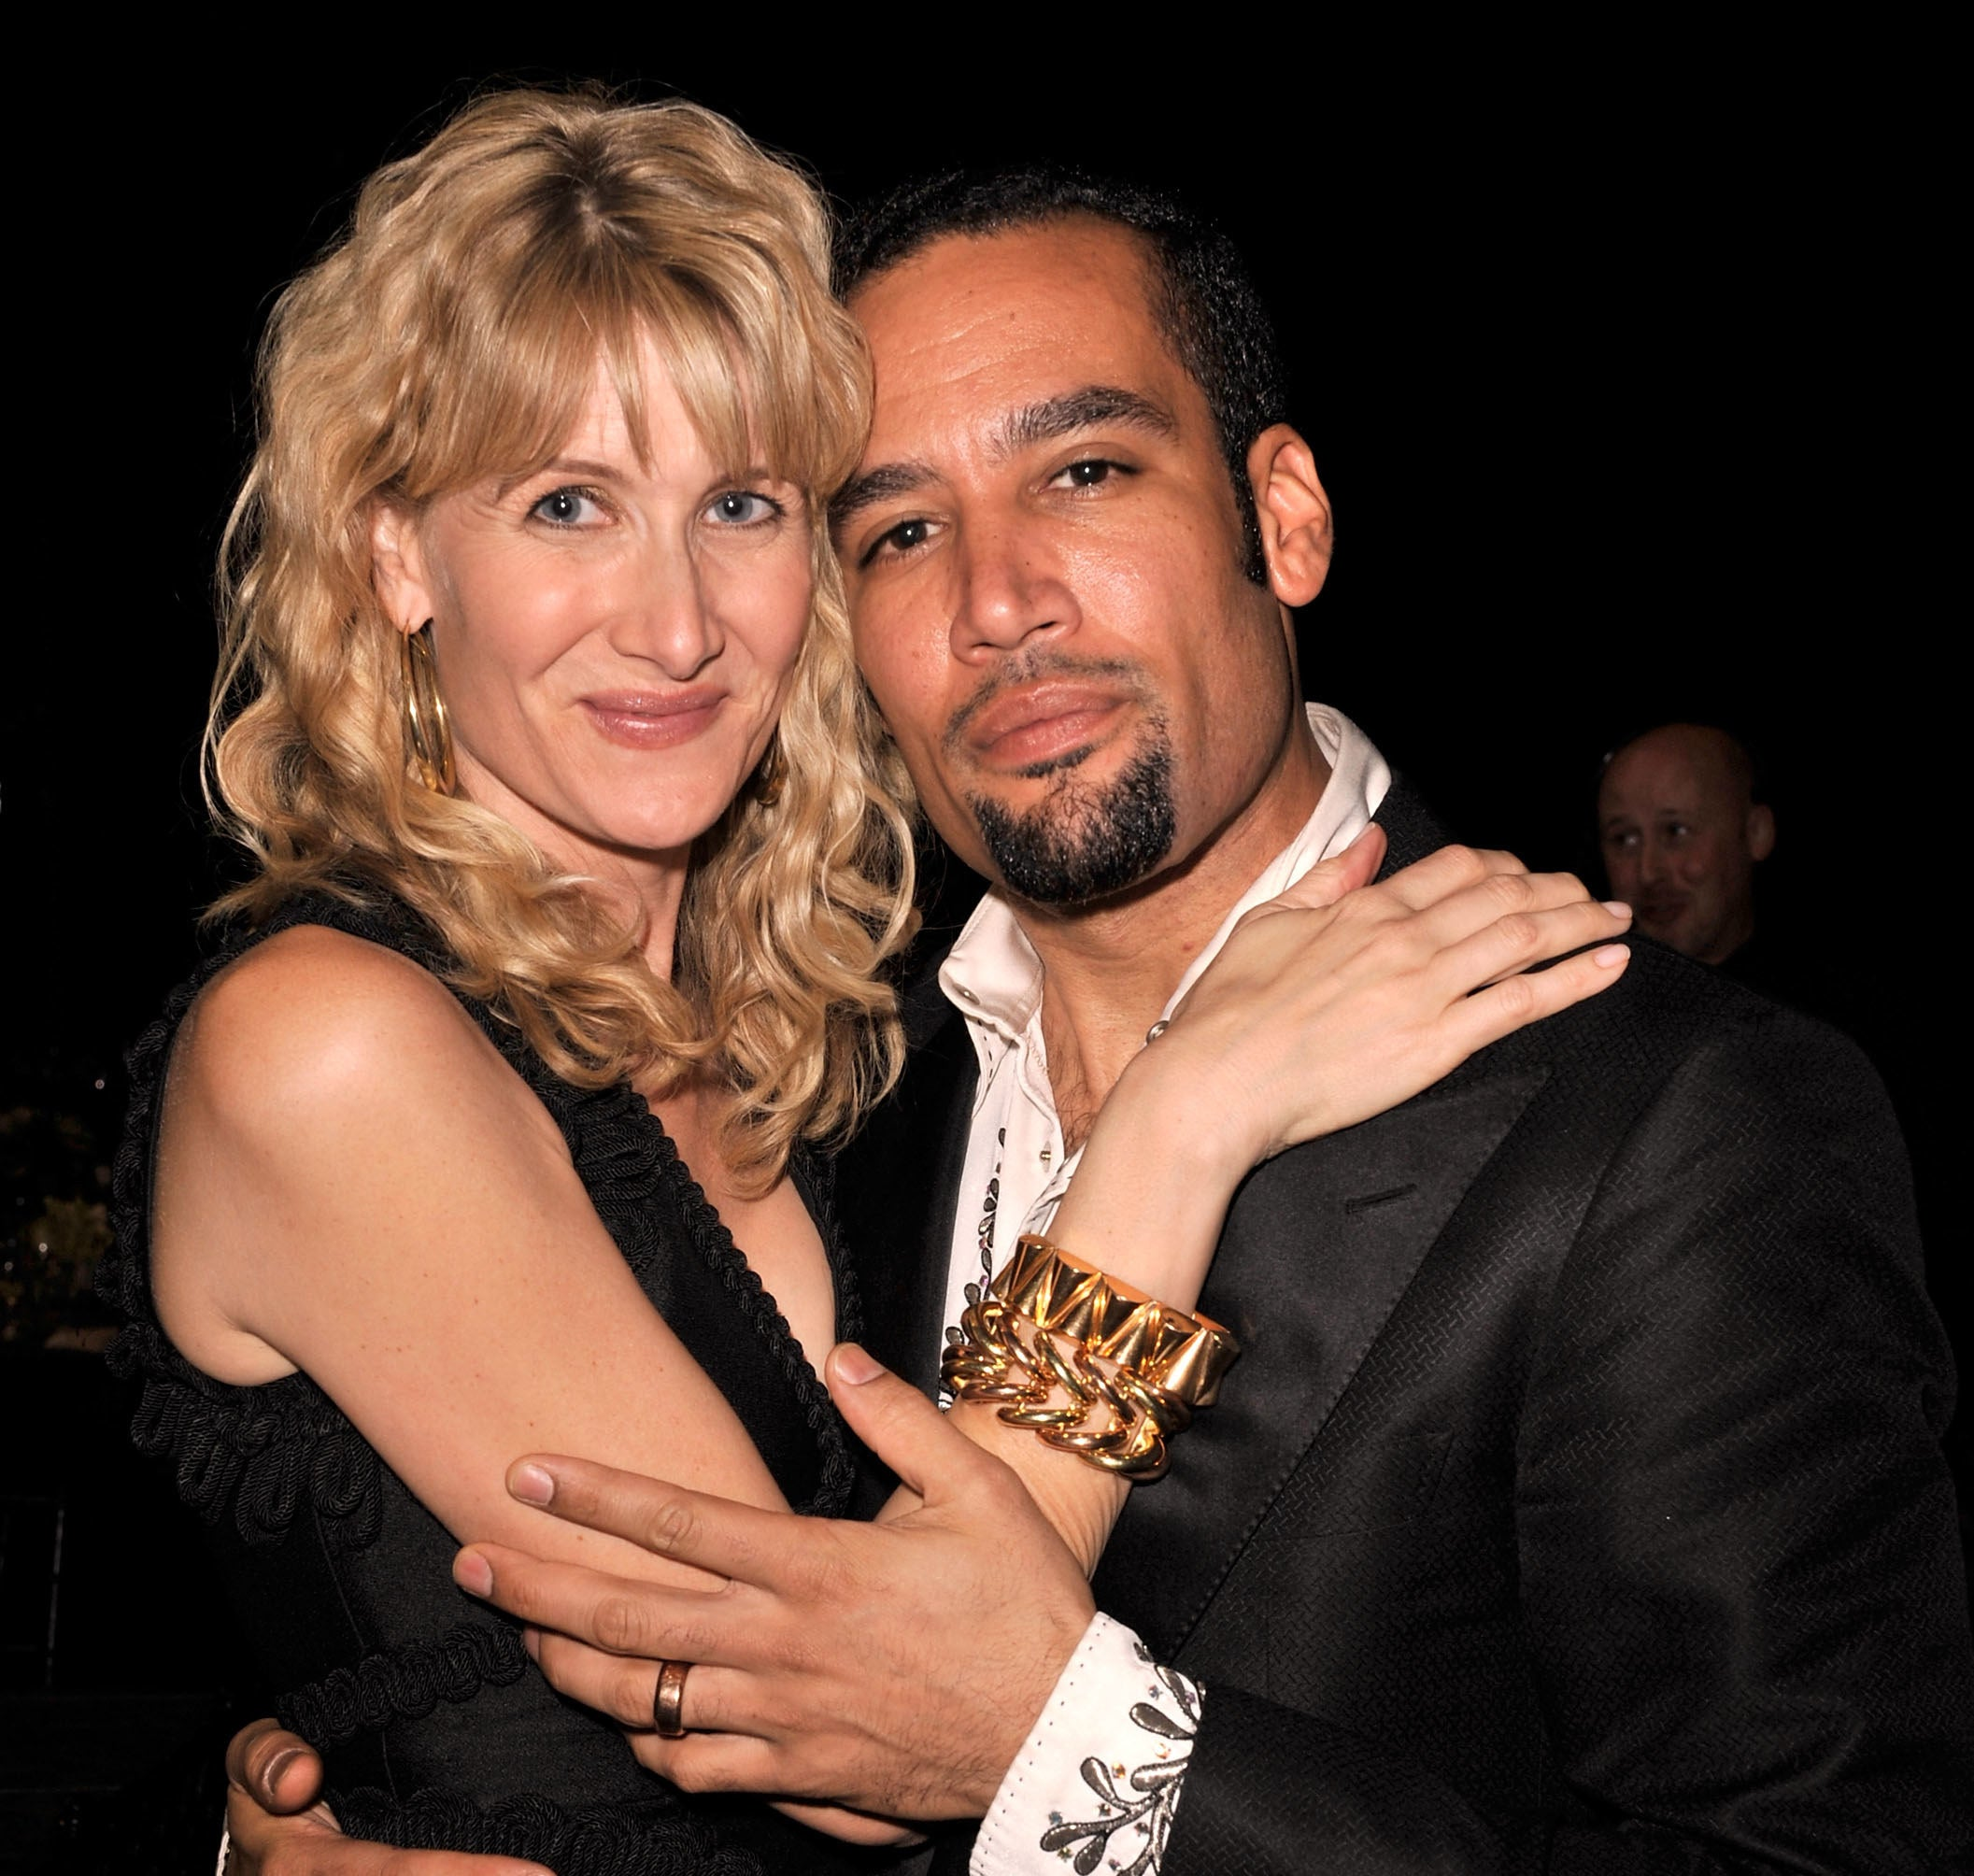 A photo of Laura Dern and Ben Harper hugging at an event